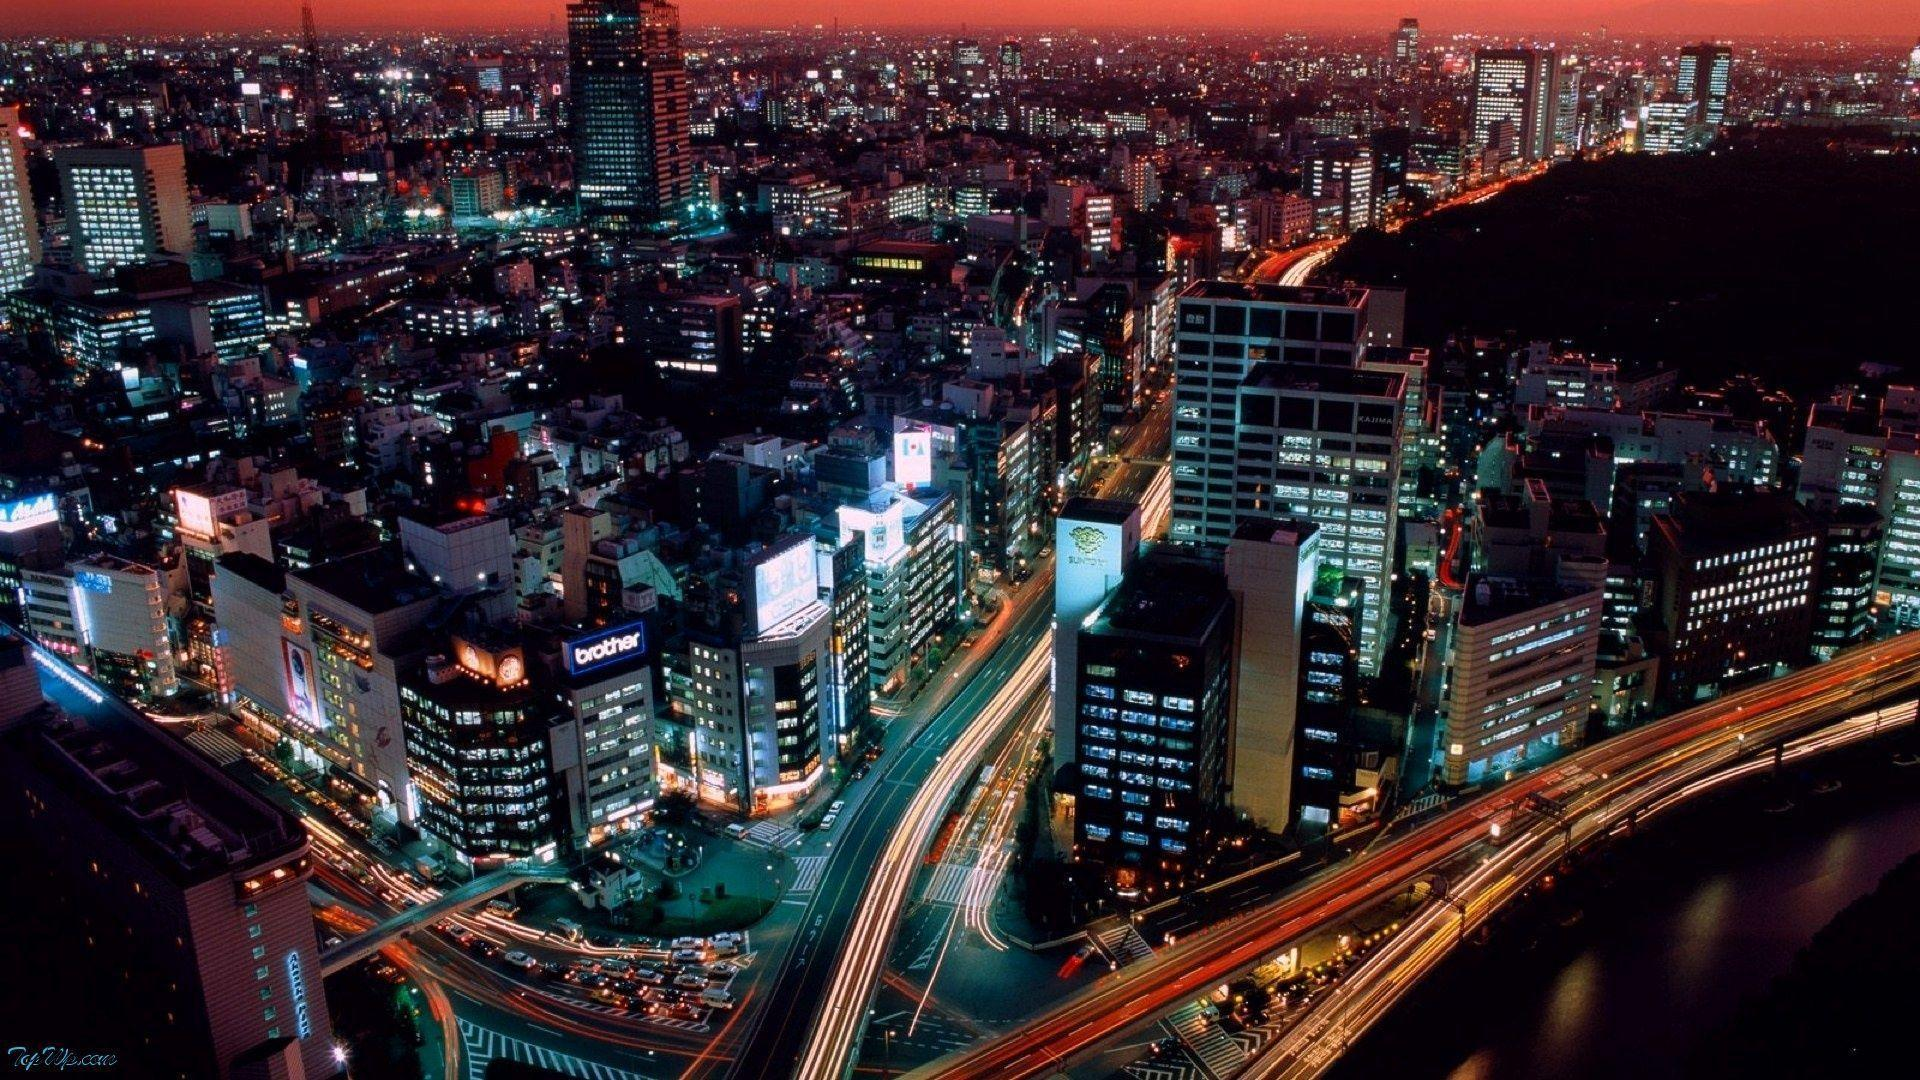 Tokyo Wallpaper 1920x1080 - Viewing Gallery